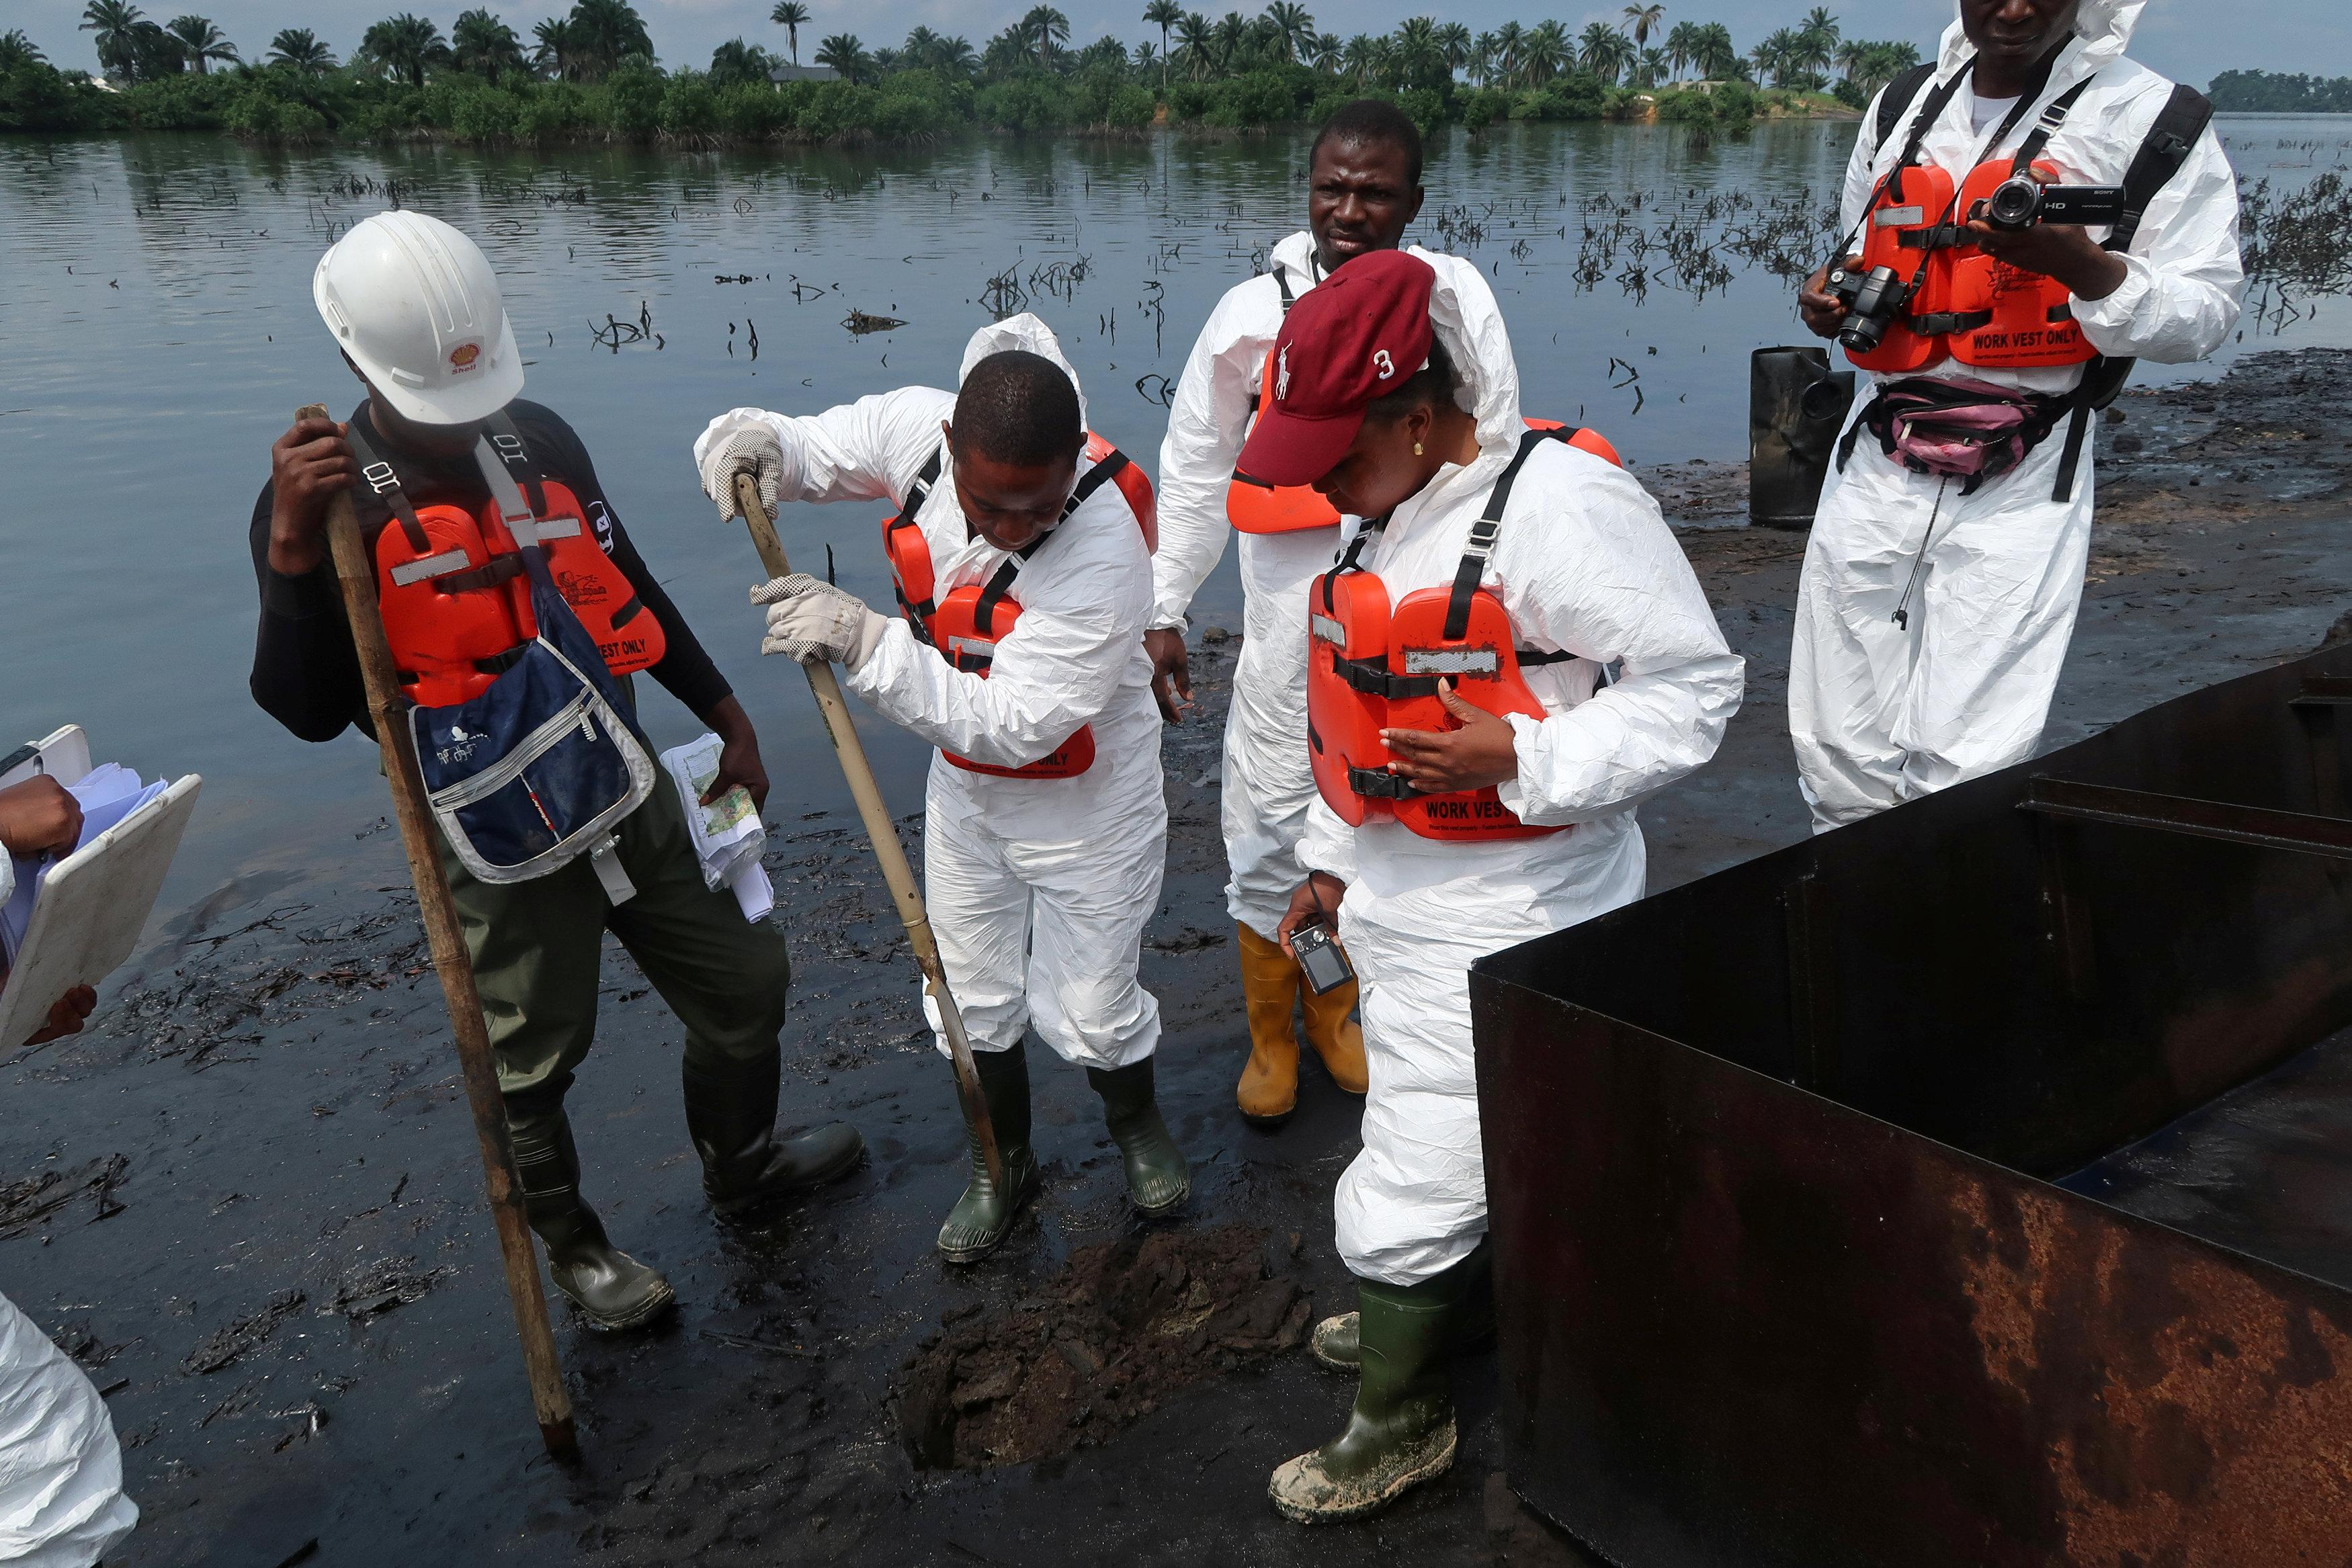 Members of the joint task force, part of the Bodo oil spill clean-up operation, inspect the site of an illegal refinery near the village of Bodo in the Niger Delta, Nigeria August 2, 2018.   Ron Bousso